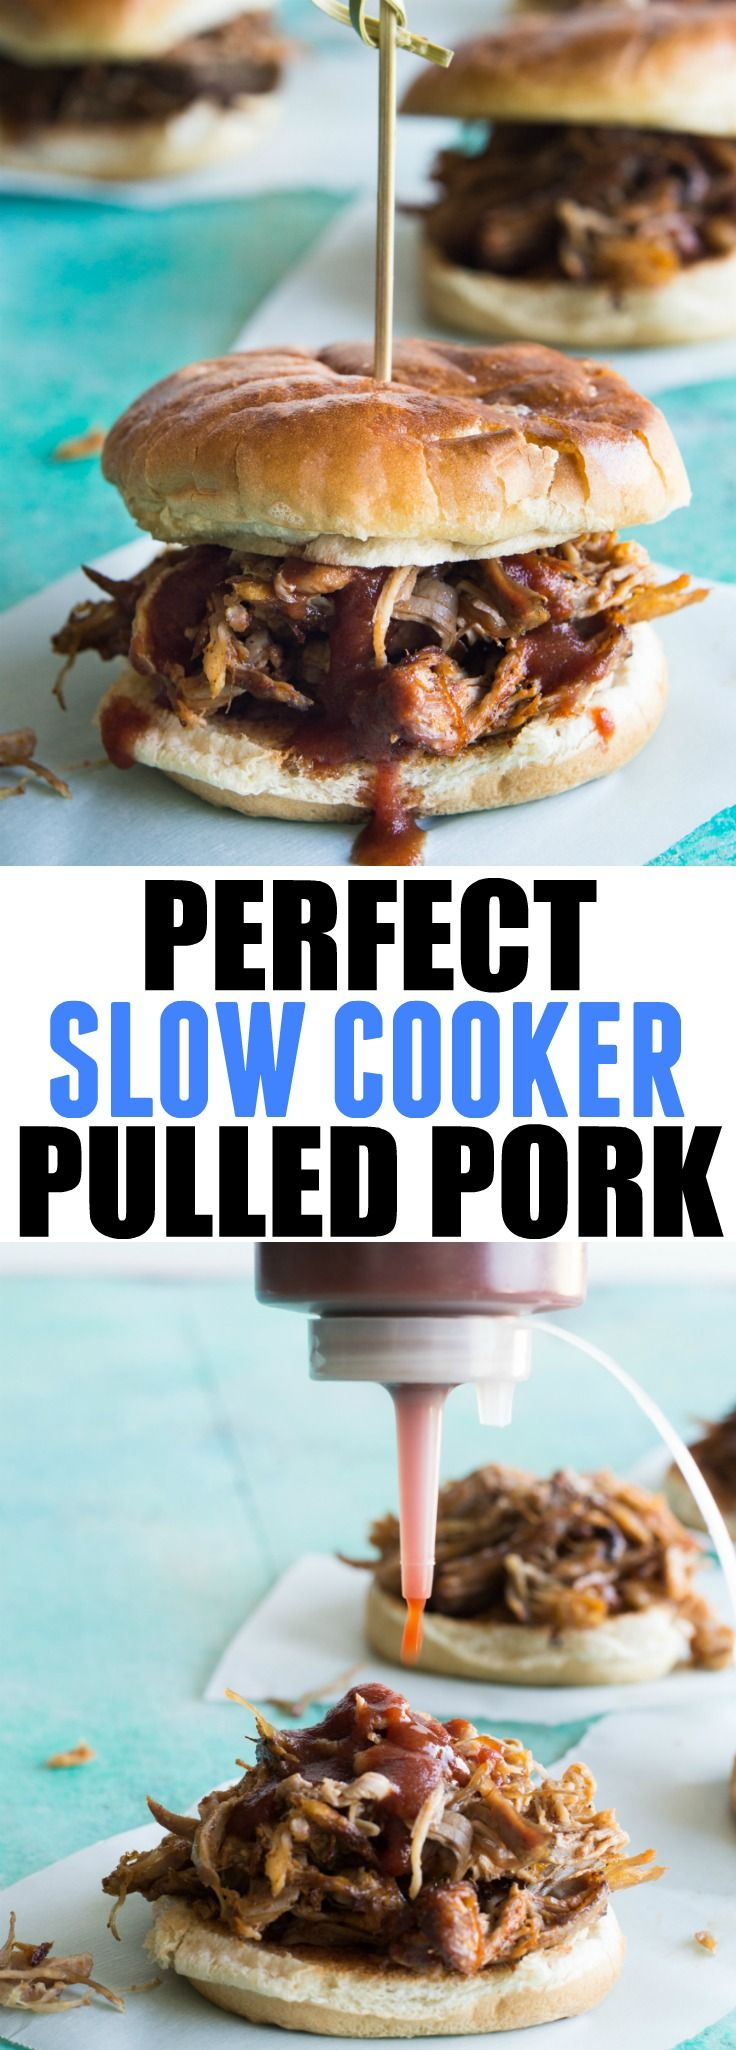 Perfect Slow Cooker Pulled Pork.  This Texas style pulled pork is made easier in the slow cooker.  Perfect for enjoying as a BBQ Pulled Pork Sandwich, or loaded up on nachos, or even as a pizza topping!  The possibilities are endless!